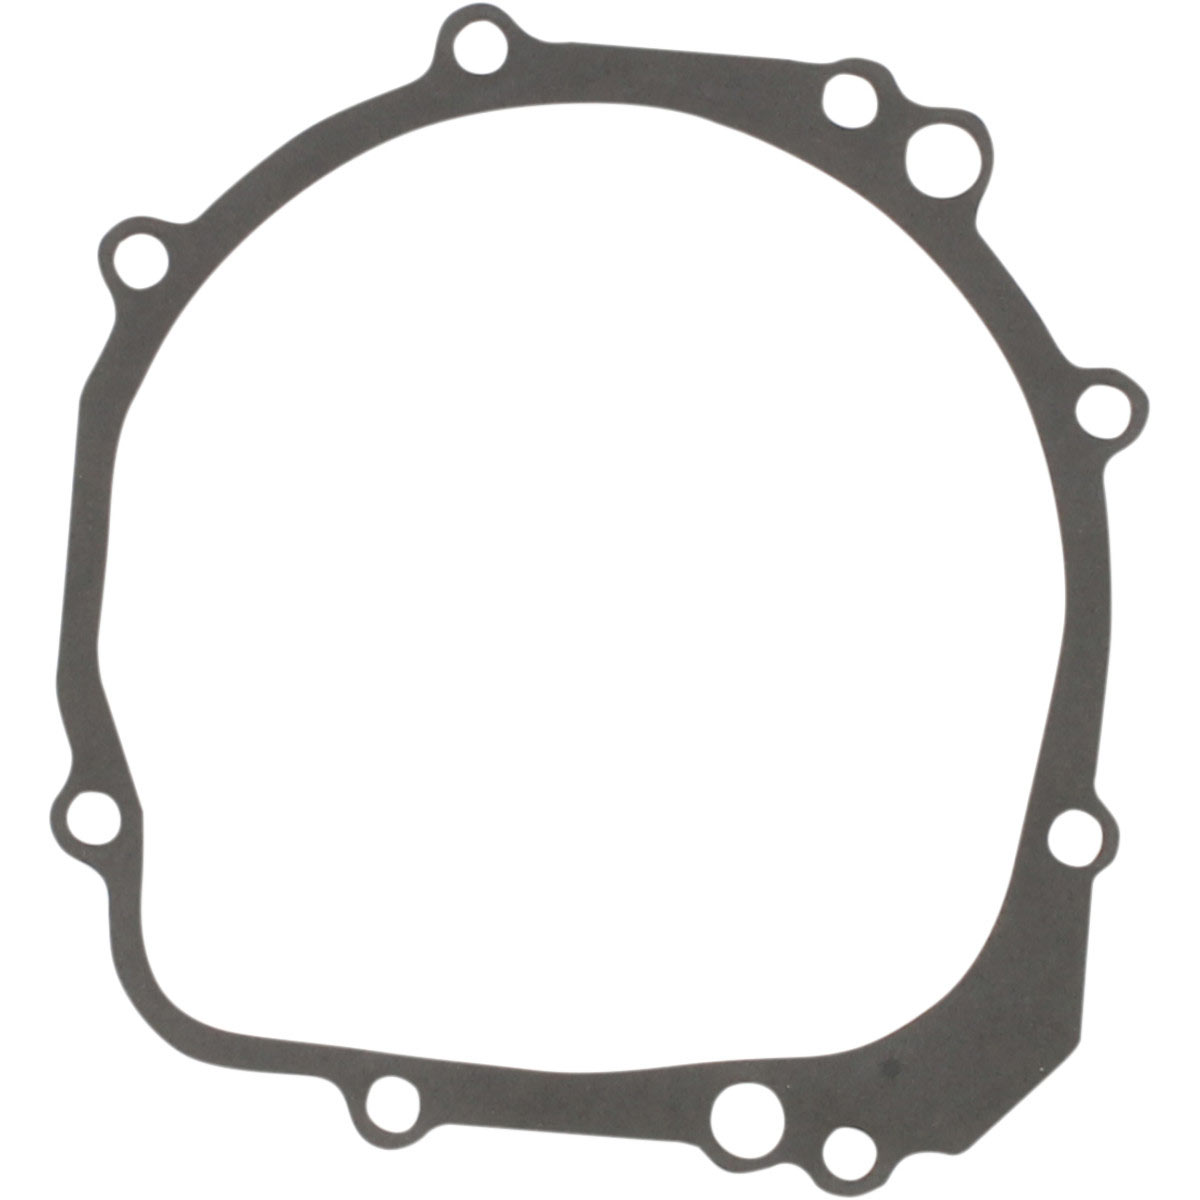 Cometic Stator/Magneto Cover Gasket for GSX-R750 00-05